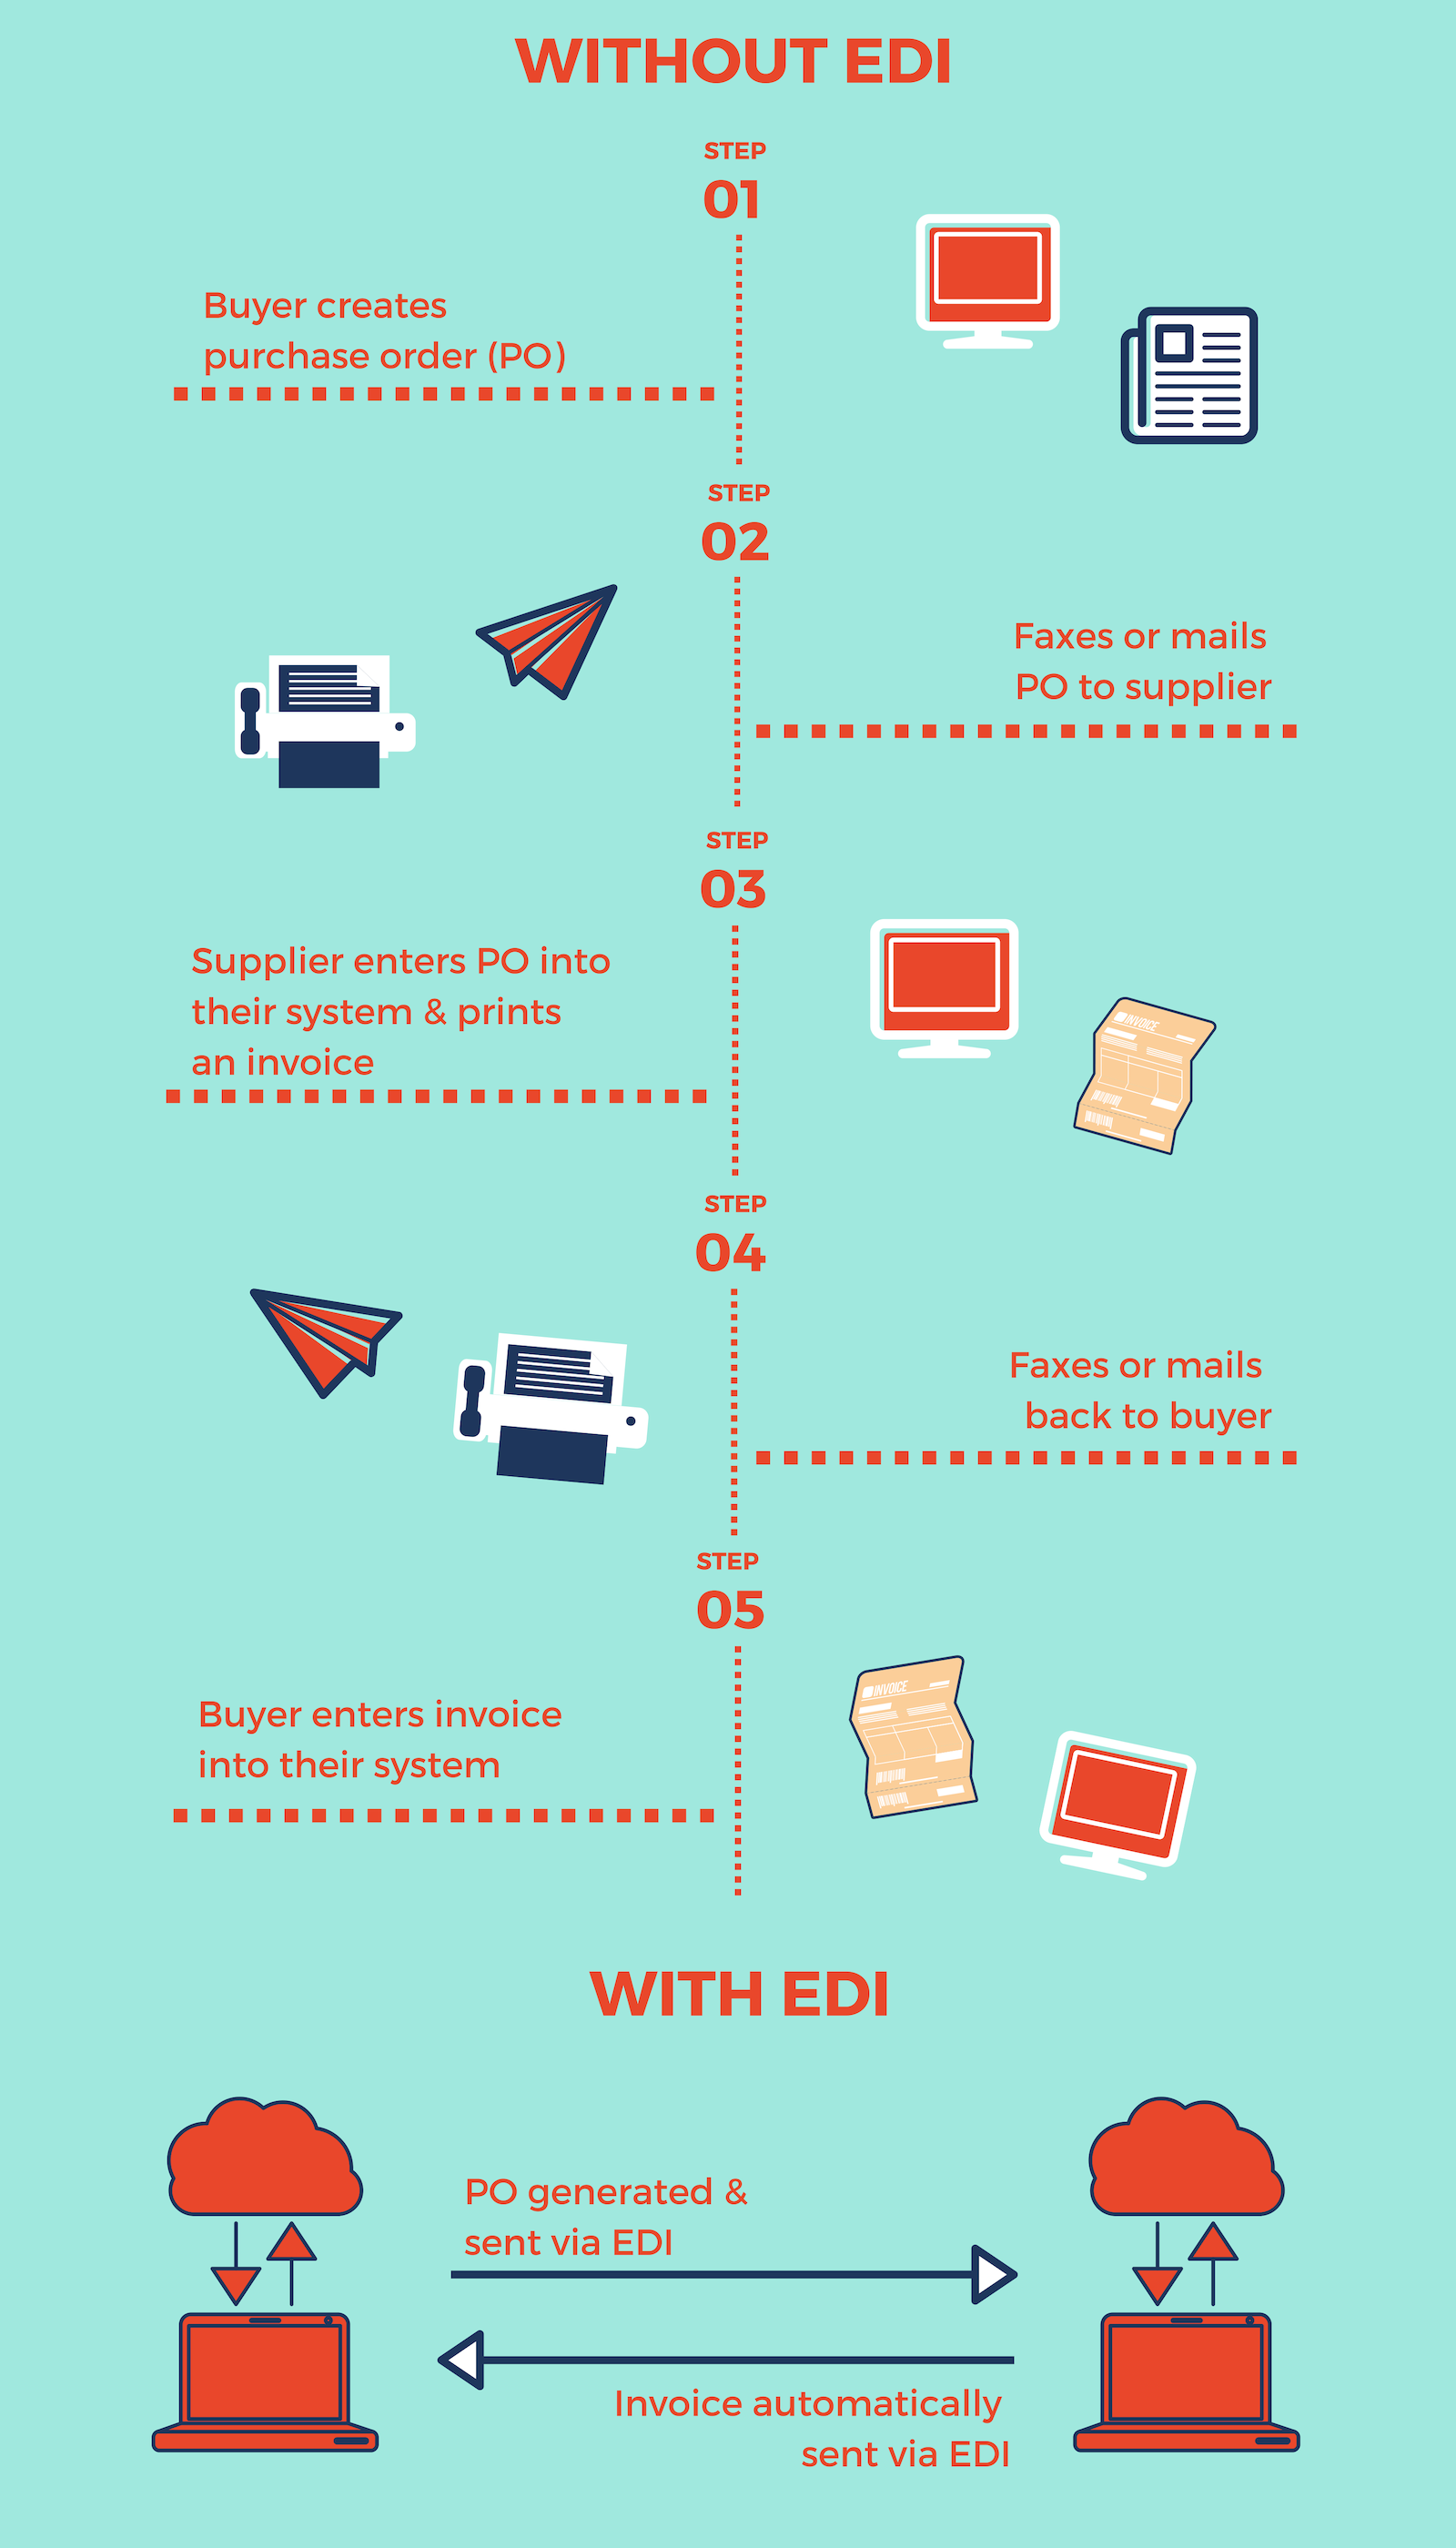 infographic showing ordering with and without edi